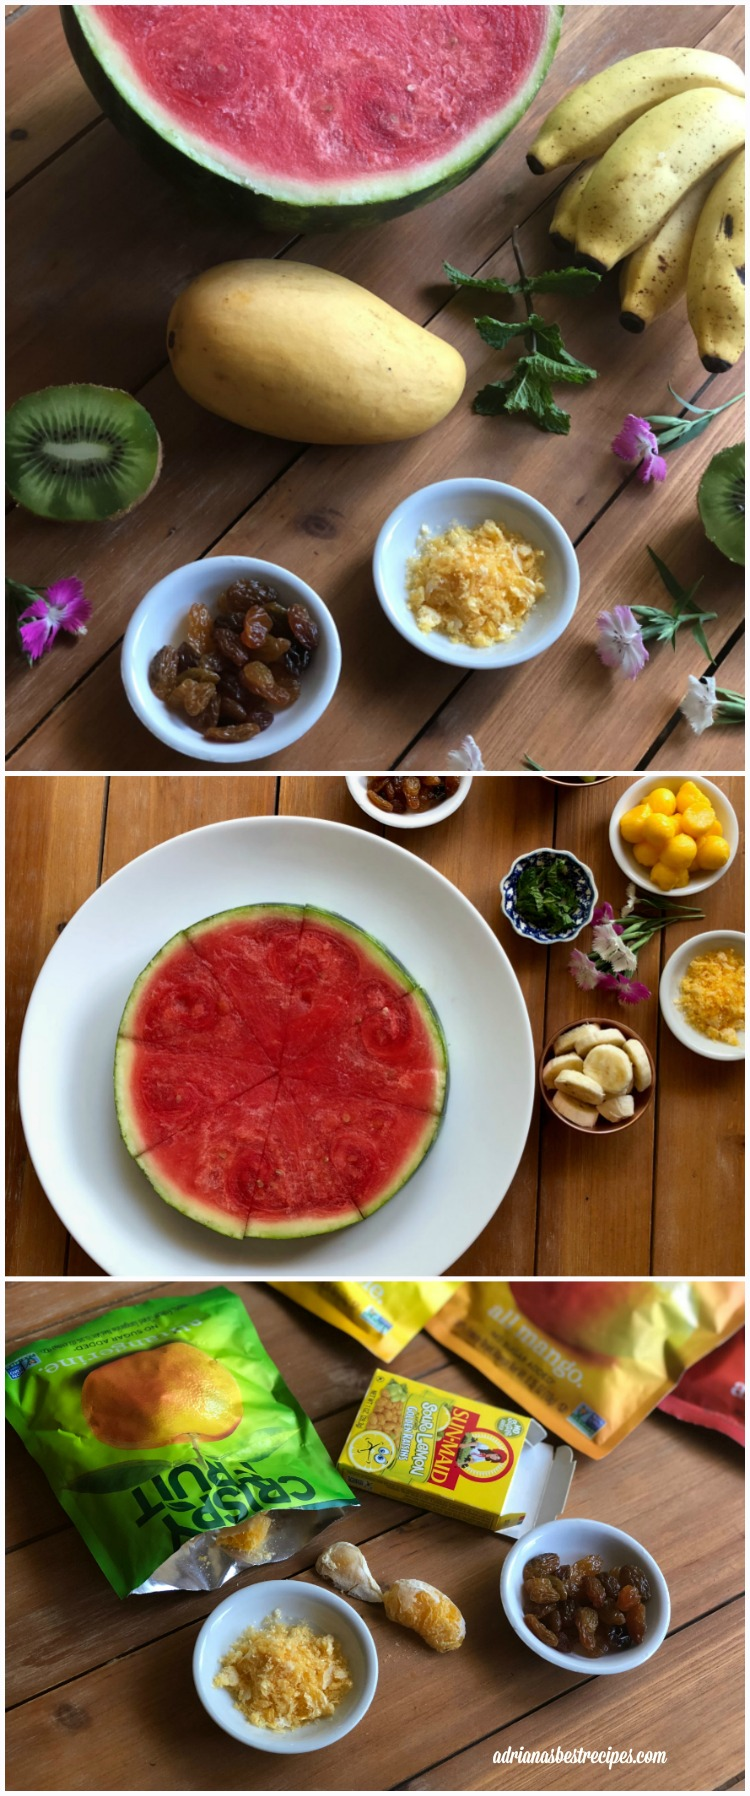 Ingredients for the fresh watermelon pizza